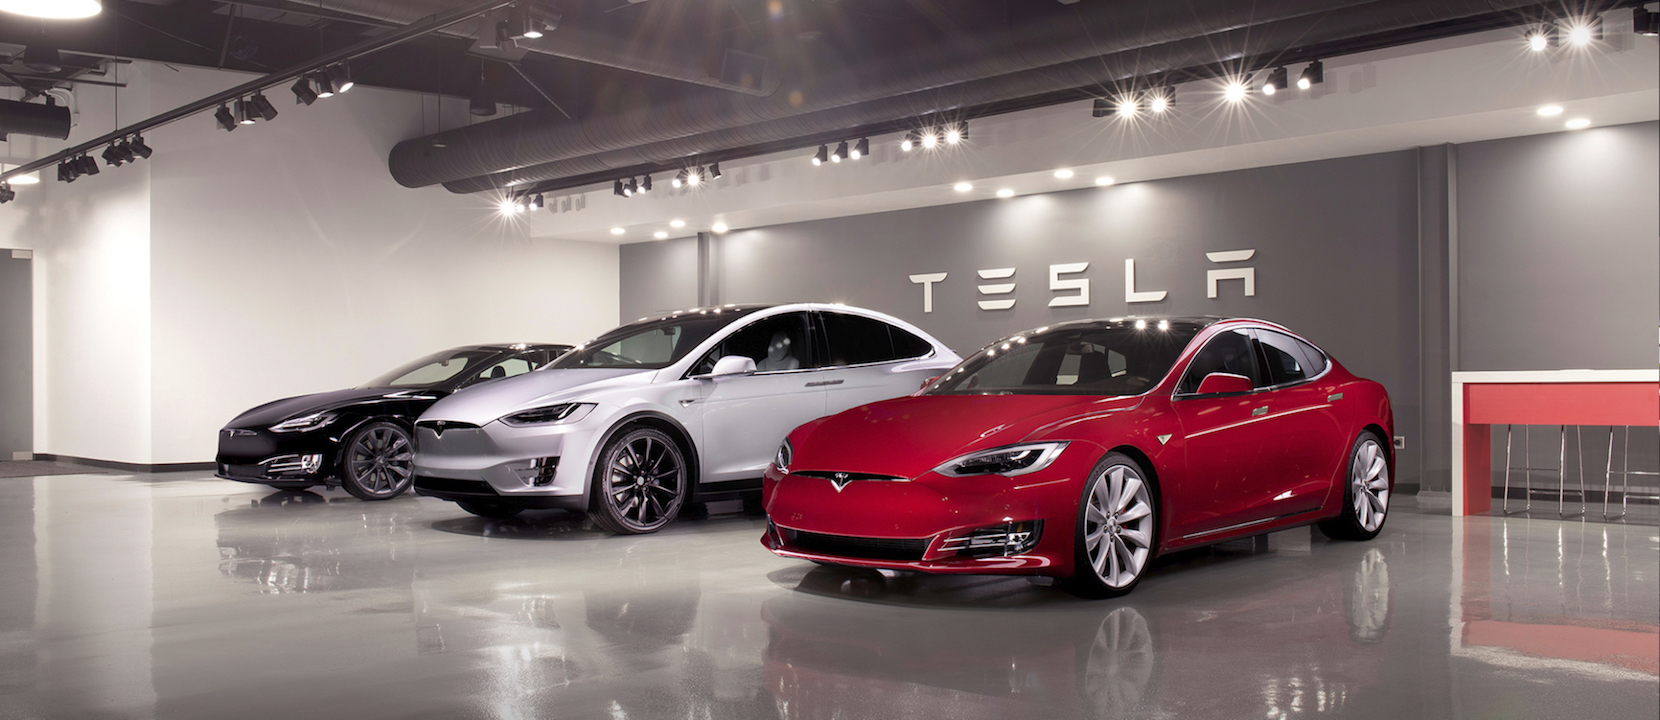 tesla-model-s-x-collection-store